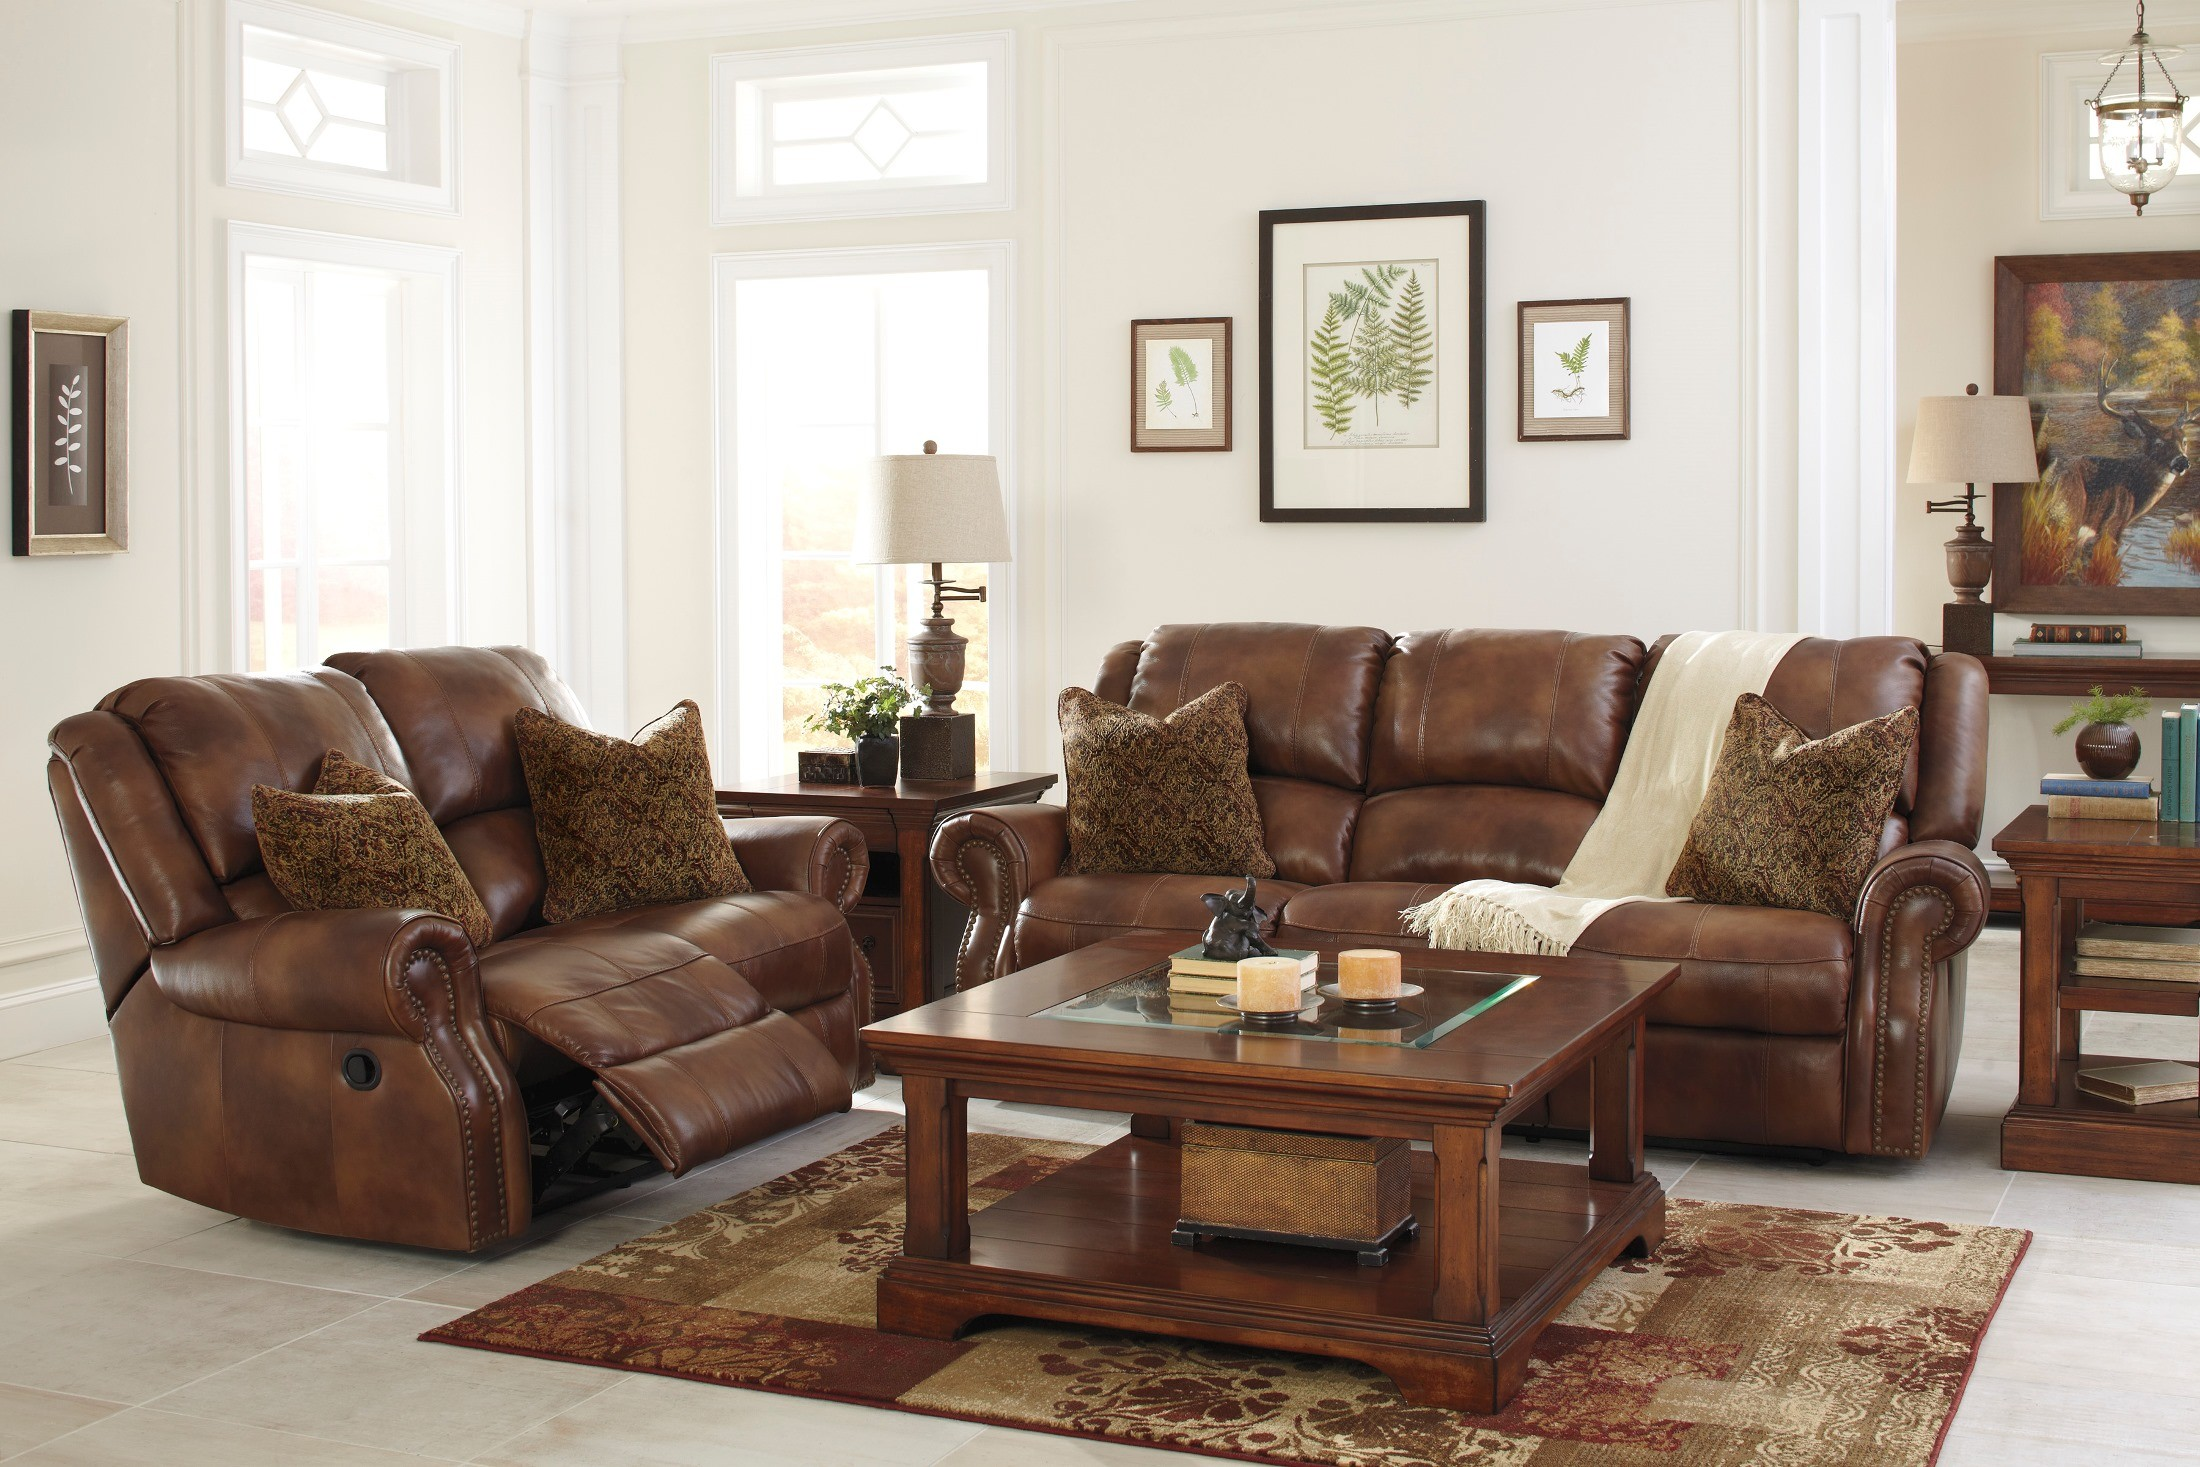 Walworth auburn power reclining living room set from Reclining living room furniture